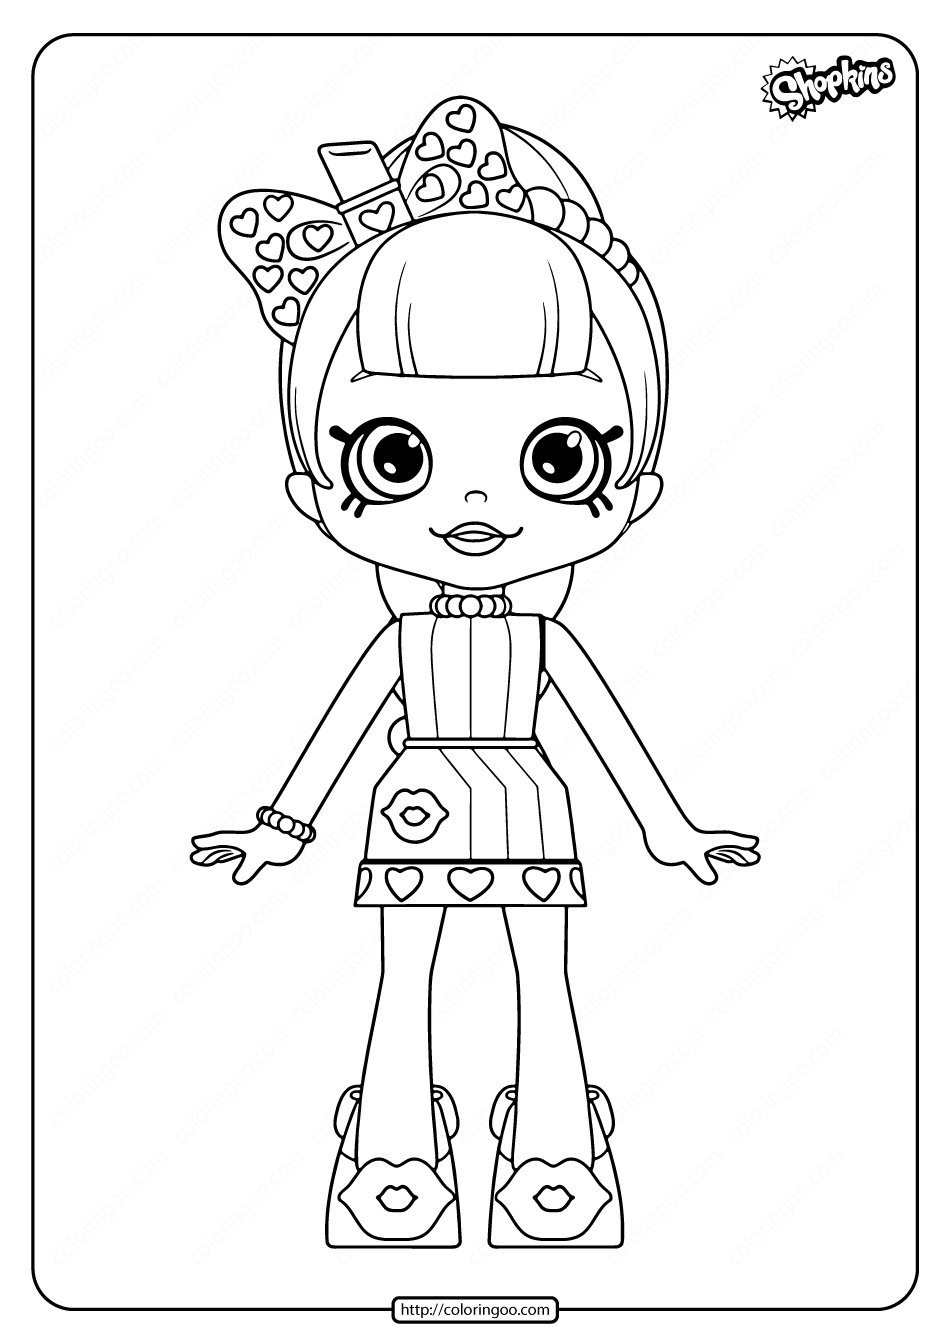 Printable Shopkins Lippy Lulu Coloring Pages